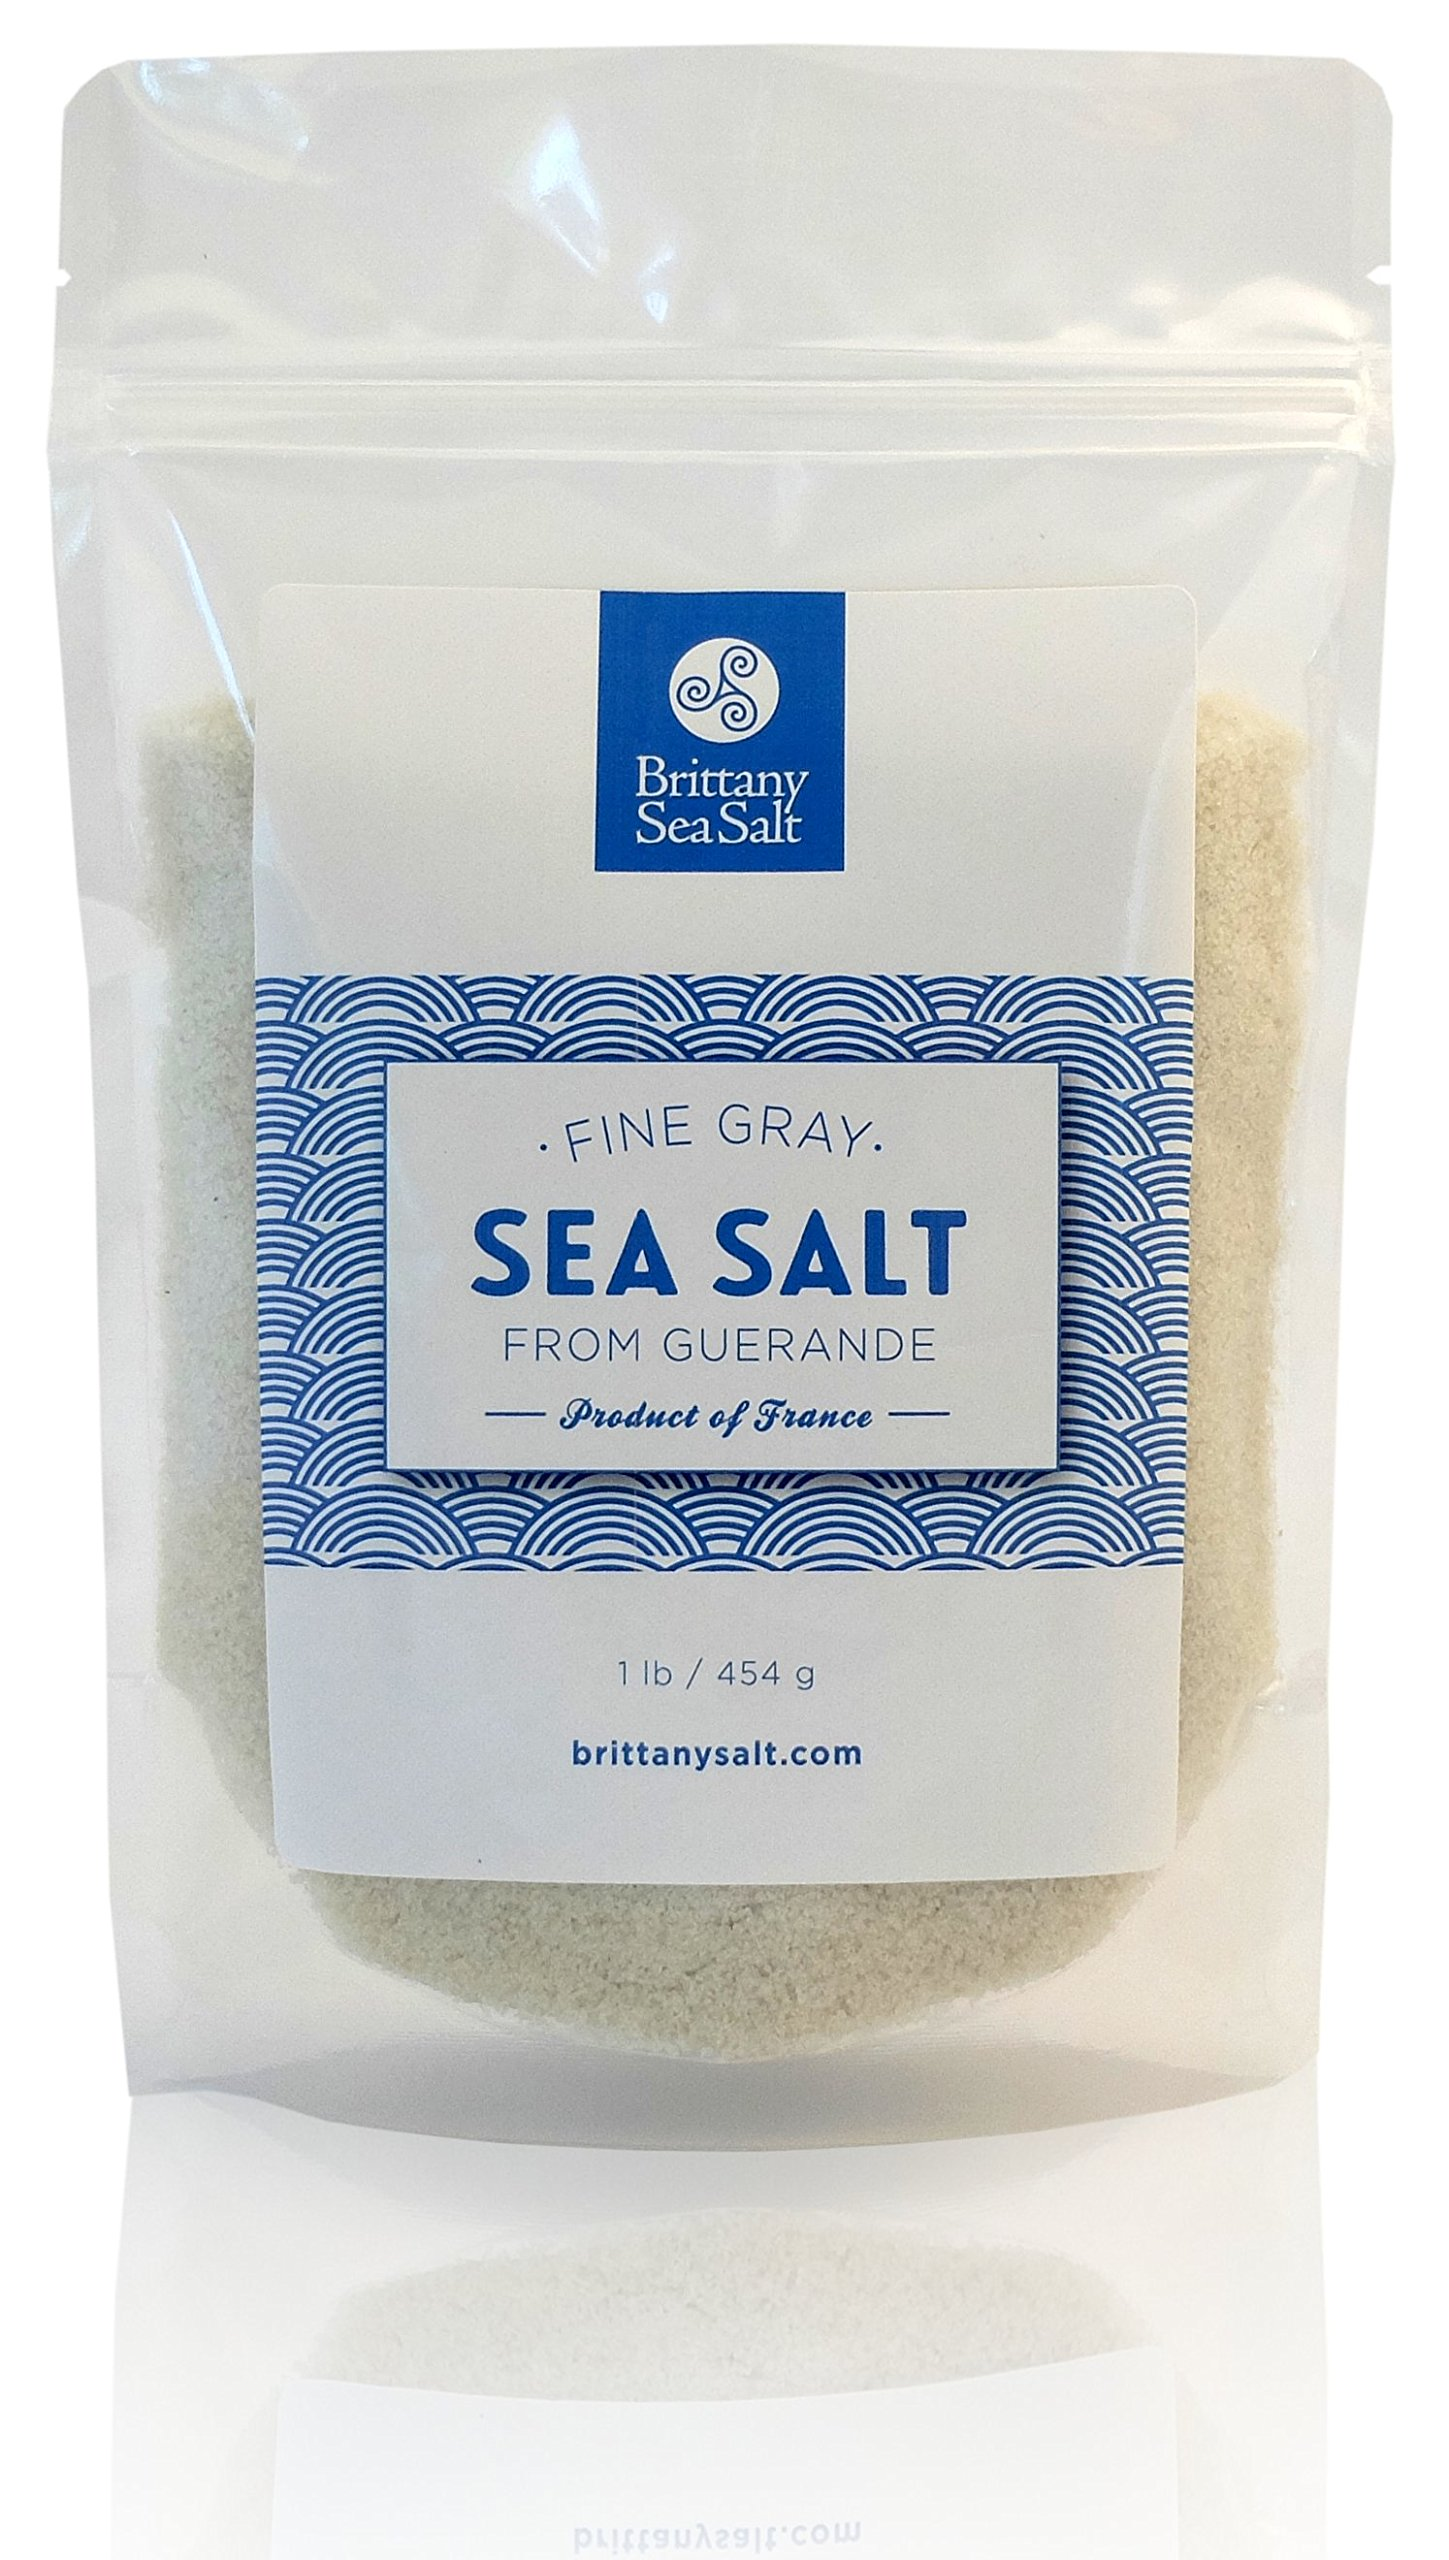 BRAND NEW PRODUCT! Celtic Sea Salt Seaweed Seasoning with Natural Iodine. Many people who use Celtic Sea Salt are concerned that they are not getting enough Iodine in their diet, and natural, unprocessed sea salt contains only trace amounts of iodine, as it's found in the ocean.